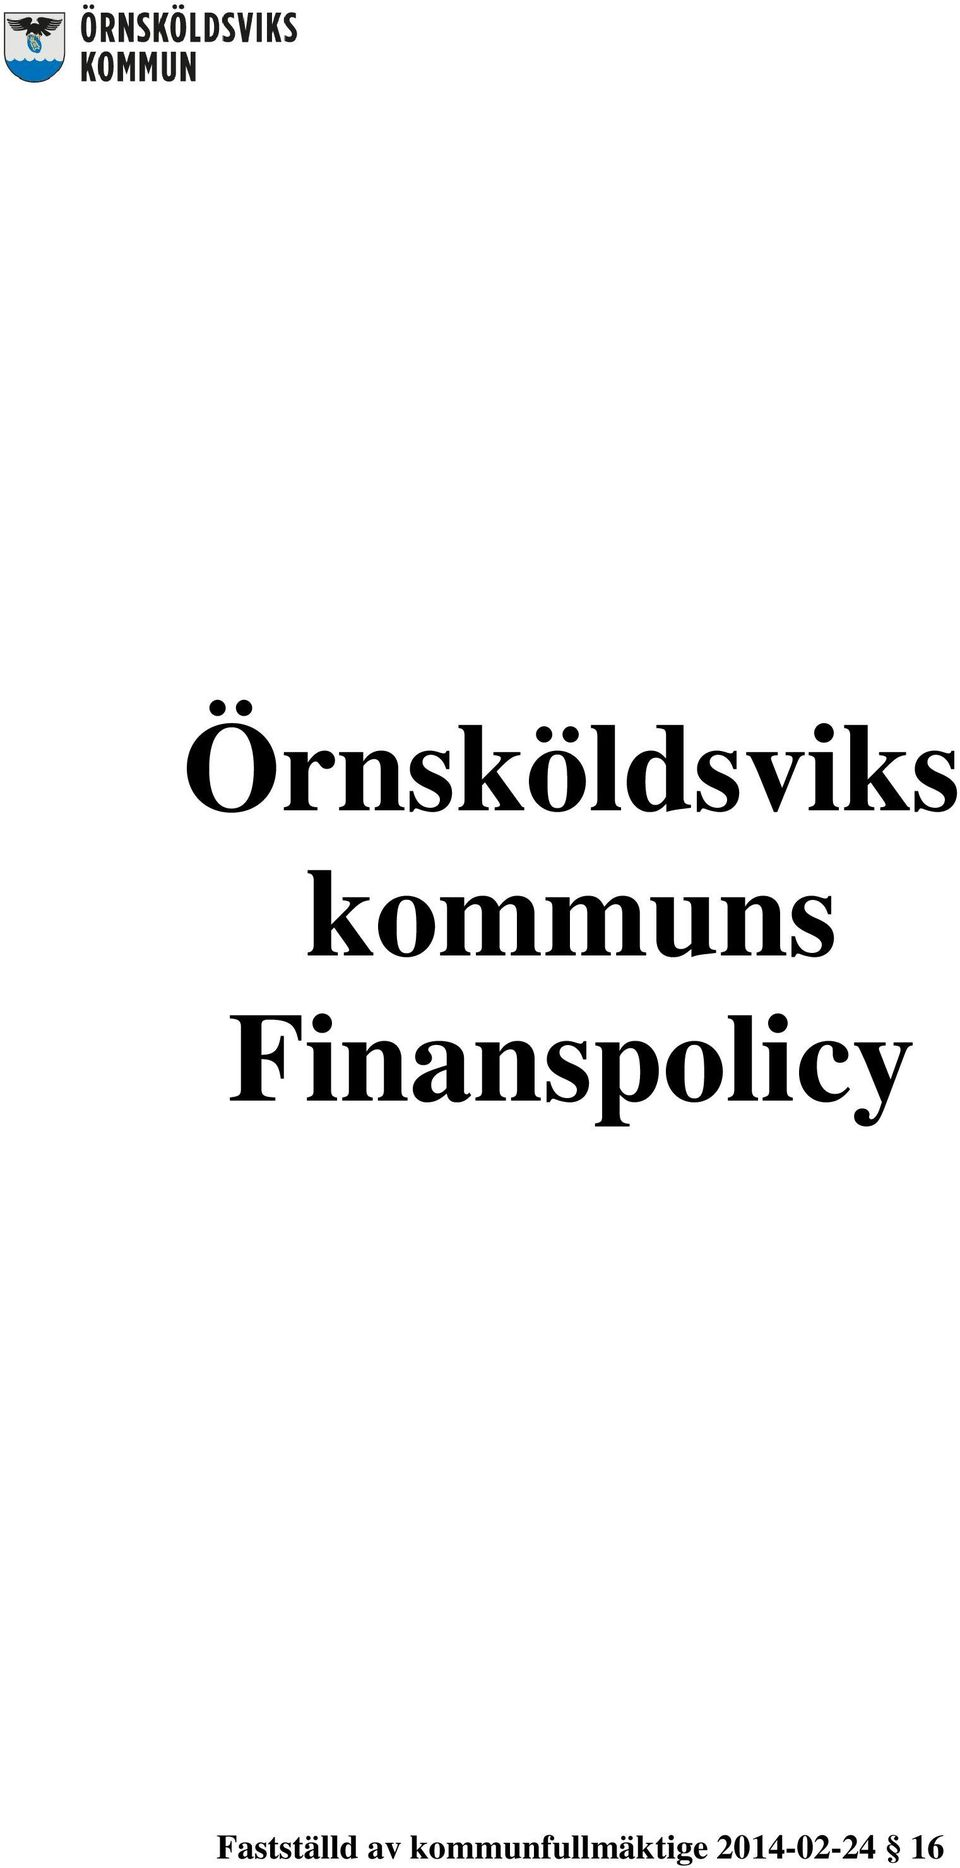 Finanspolicy